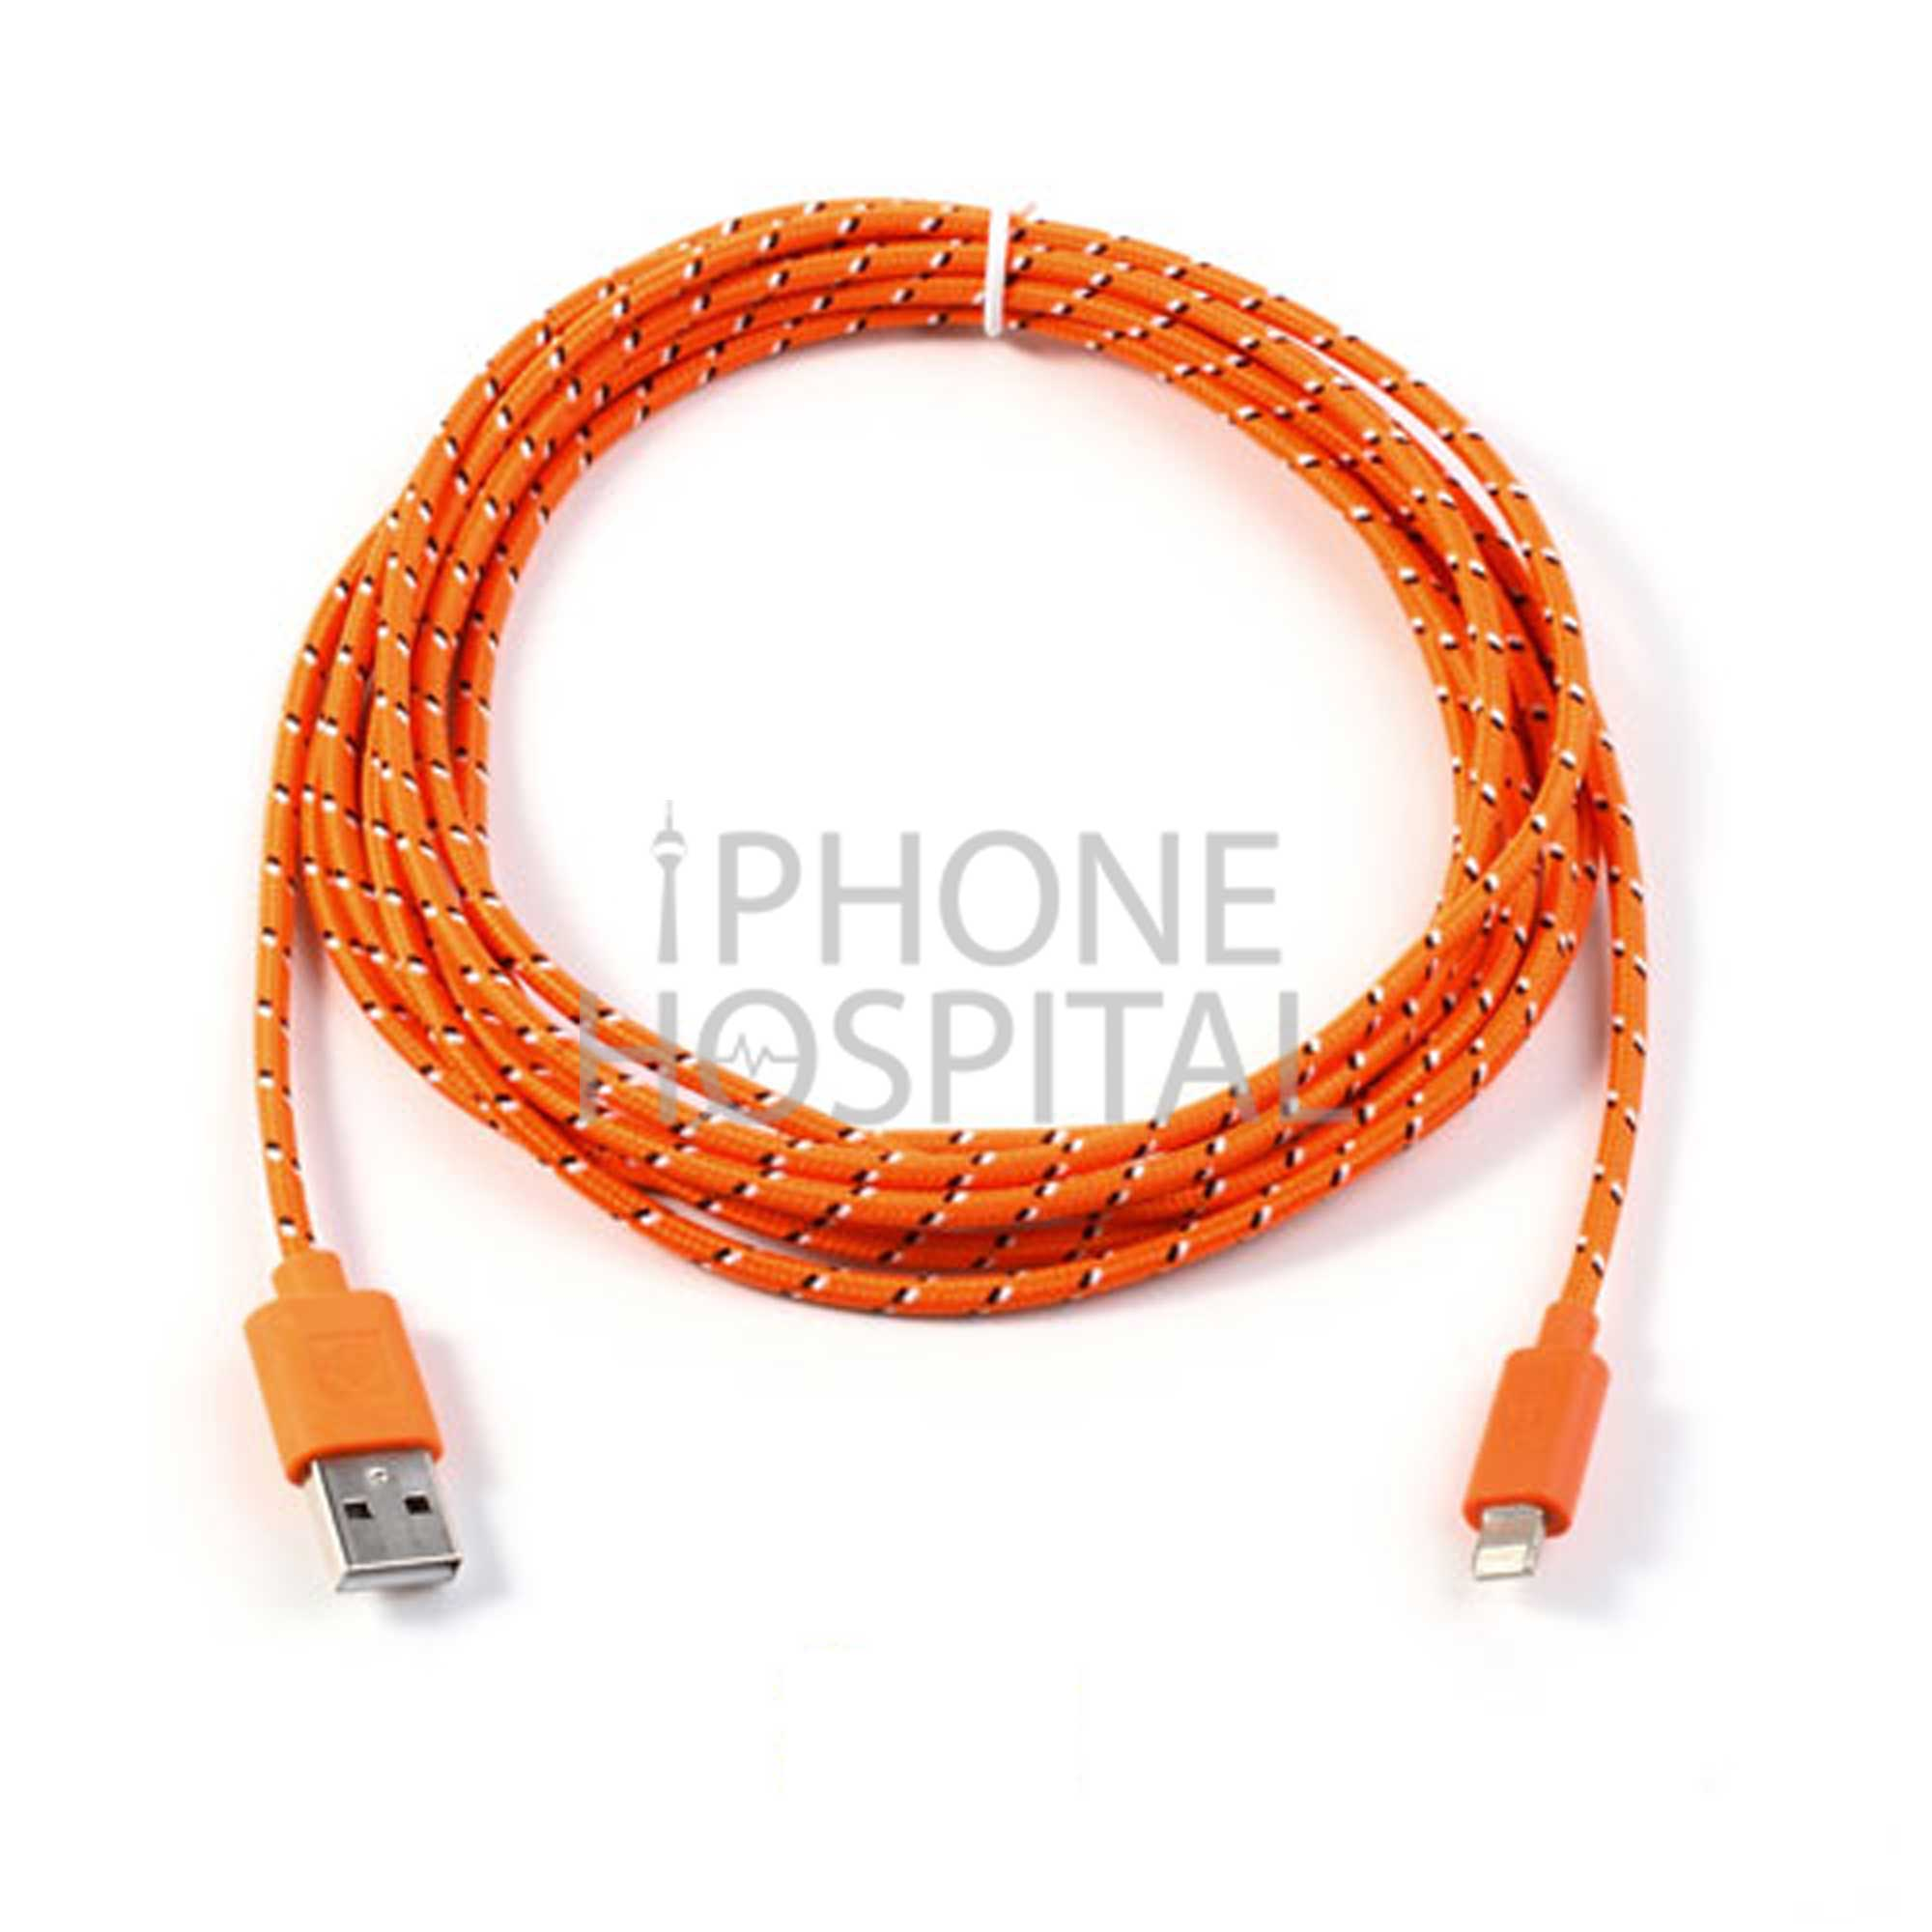 Lightning auf USB Kabel 3m Orange Geflochten für iPhone 5 / 5C / 5S / 6 / 6 Plus